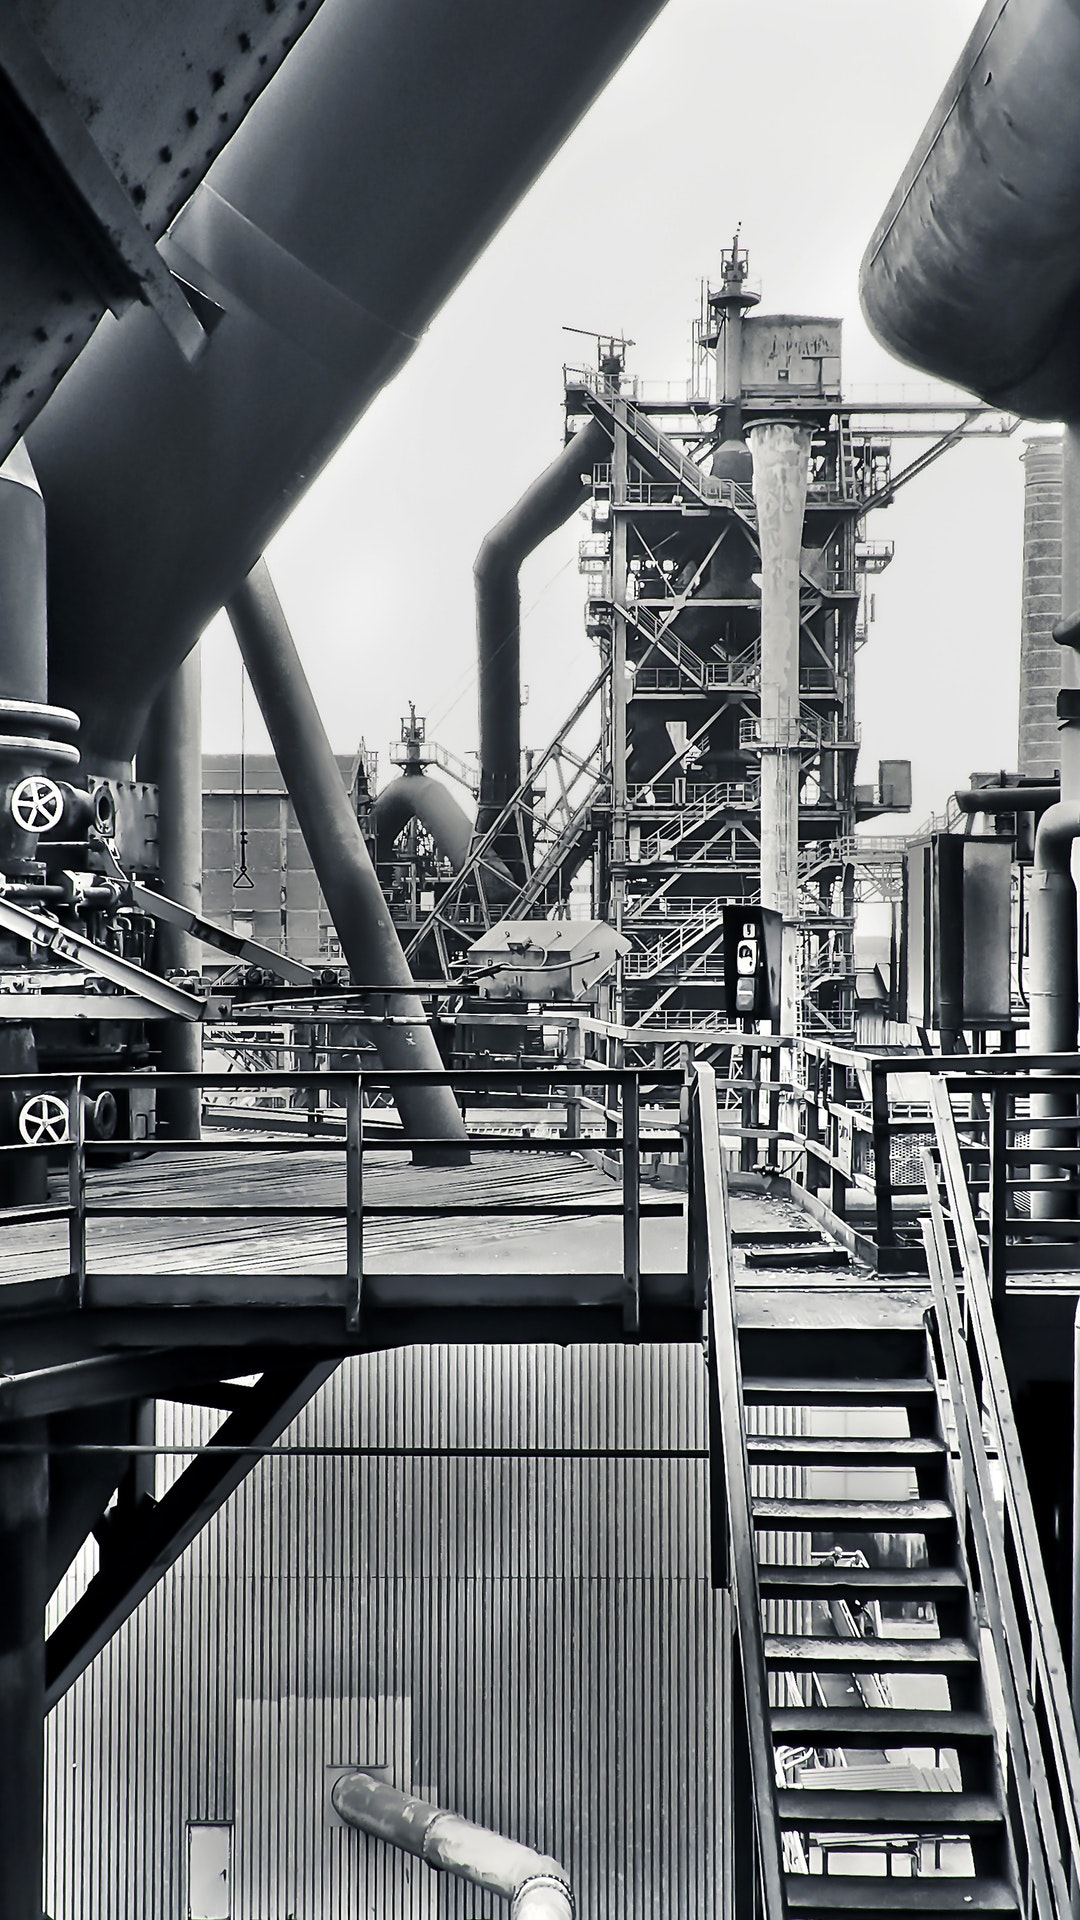 black-and-white-factory-industrial-plant-415945.jpg